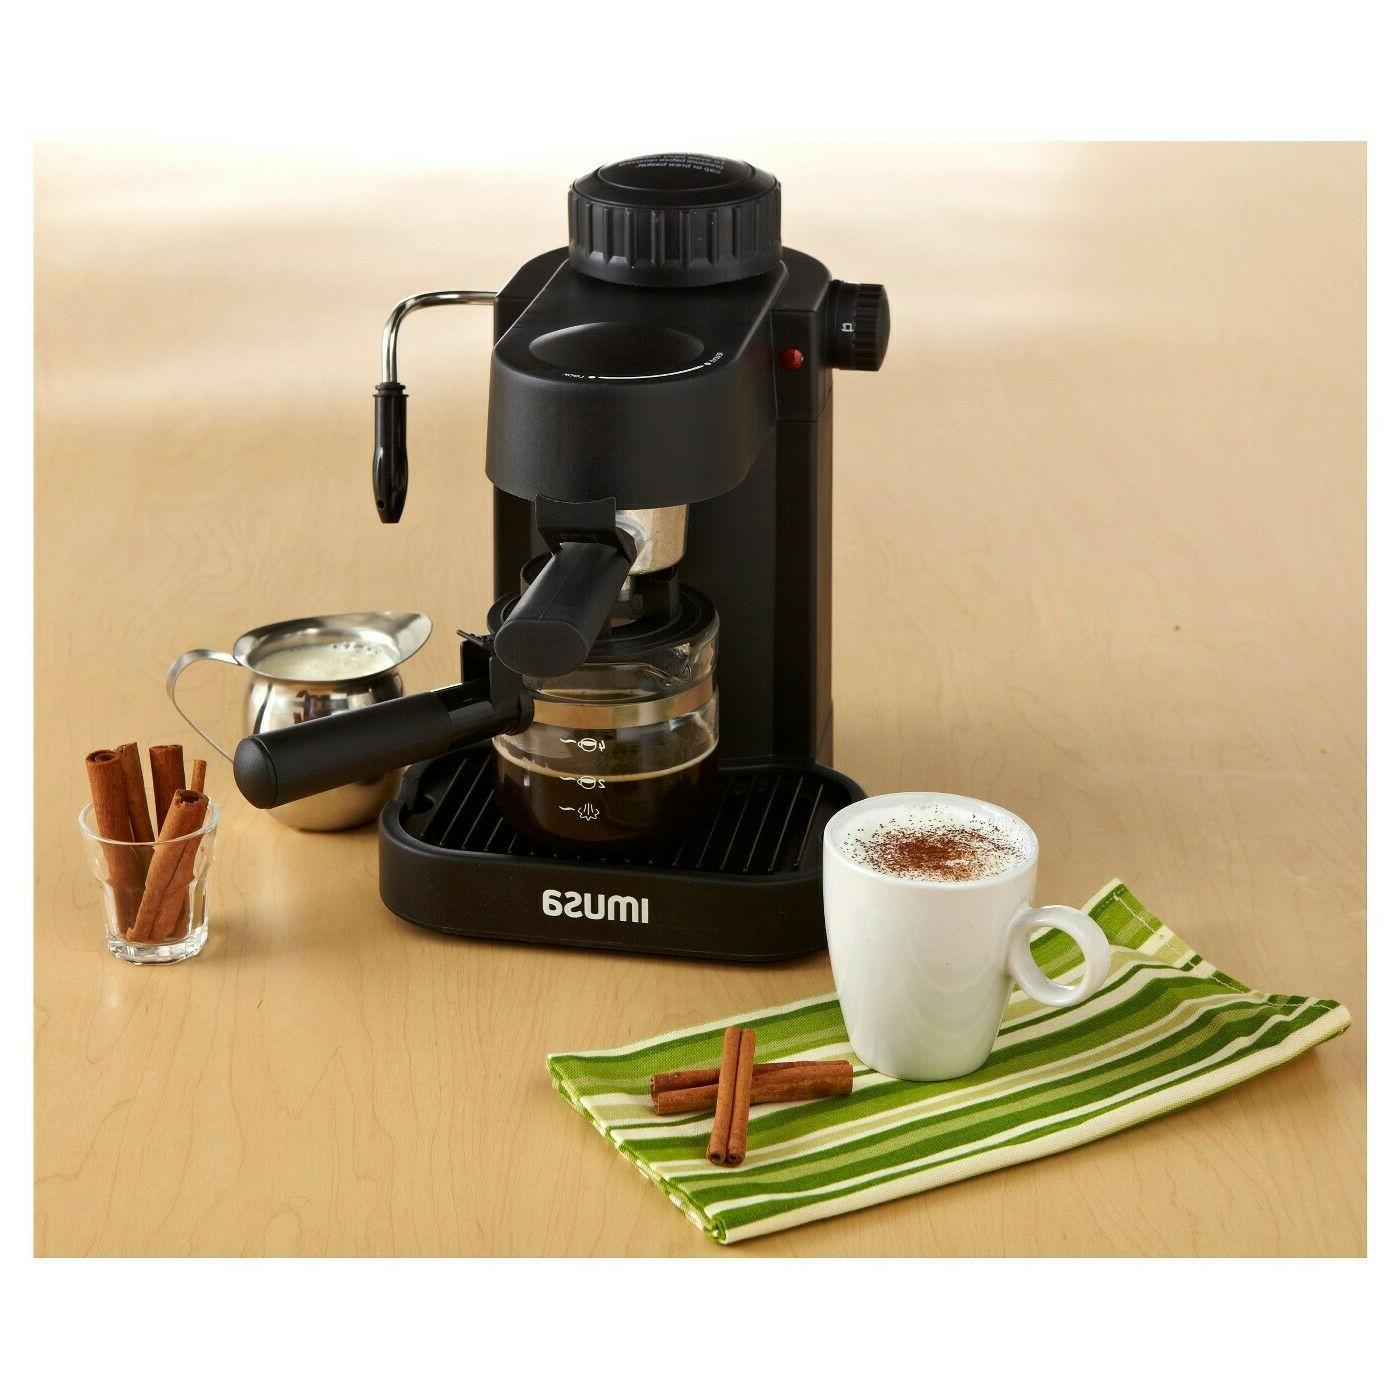 NEW Espresso Cup Maker with Indicator